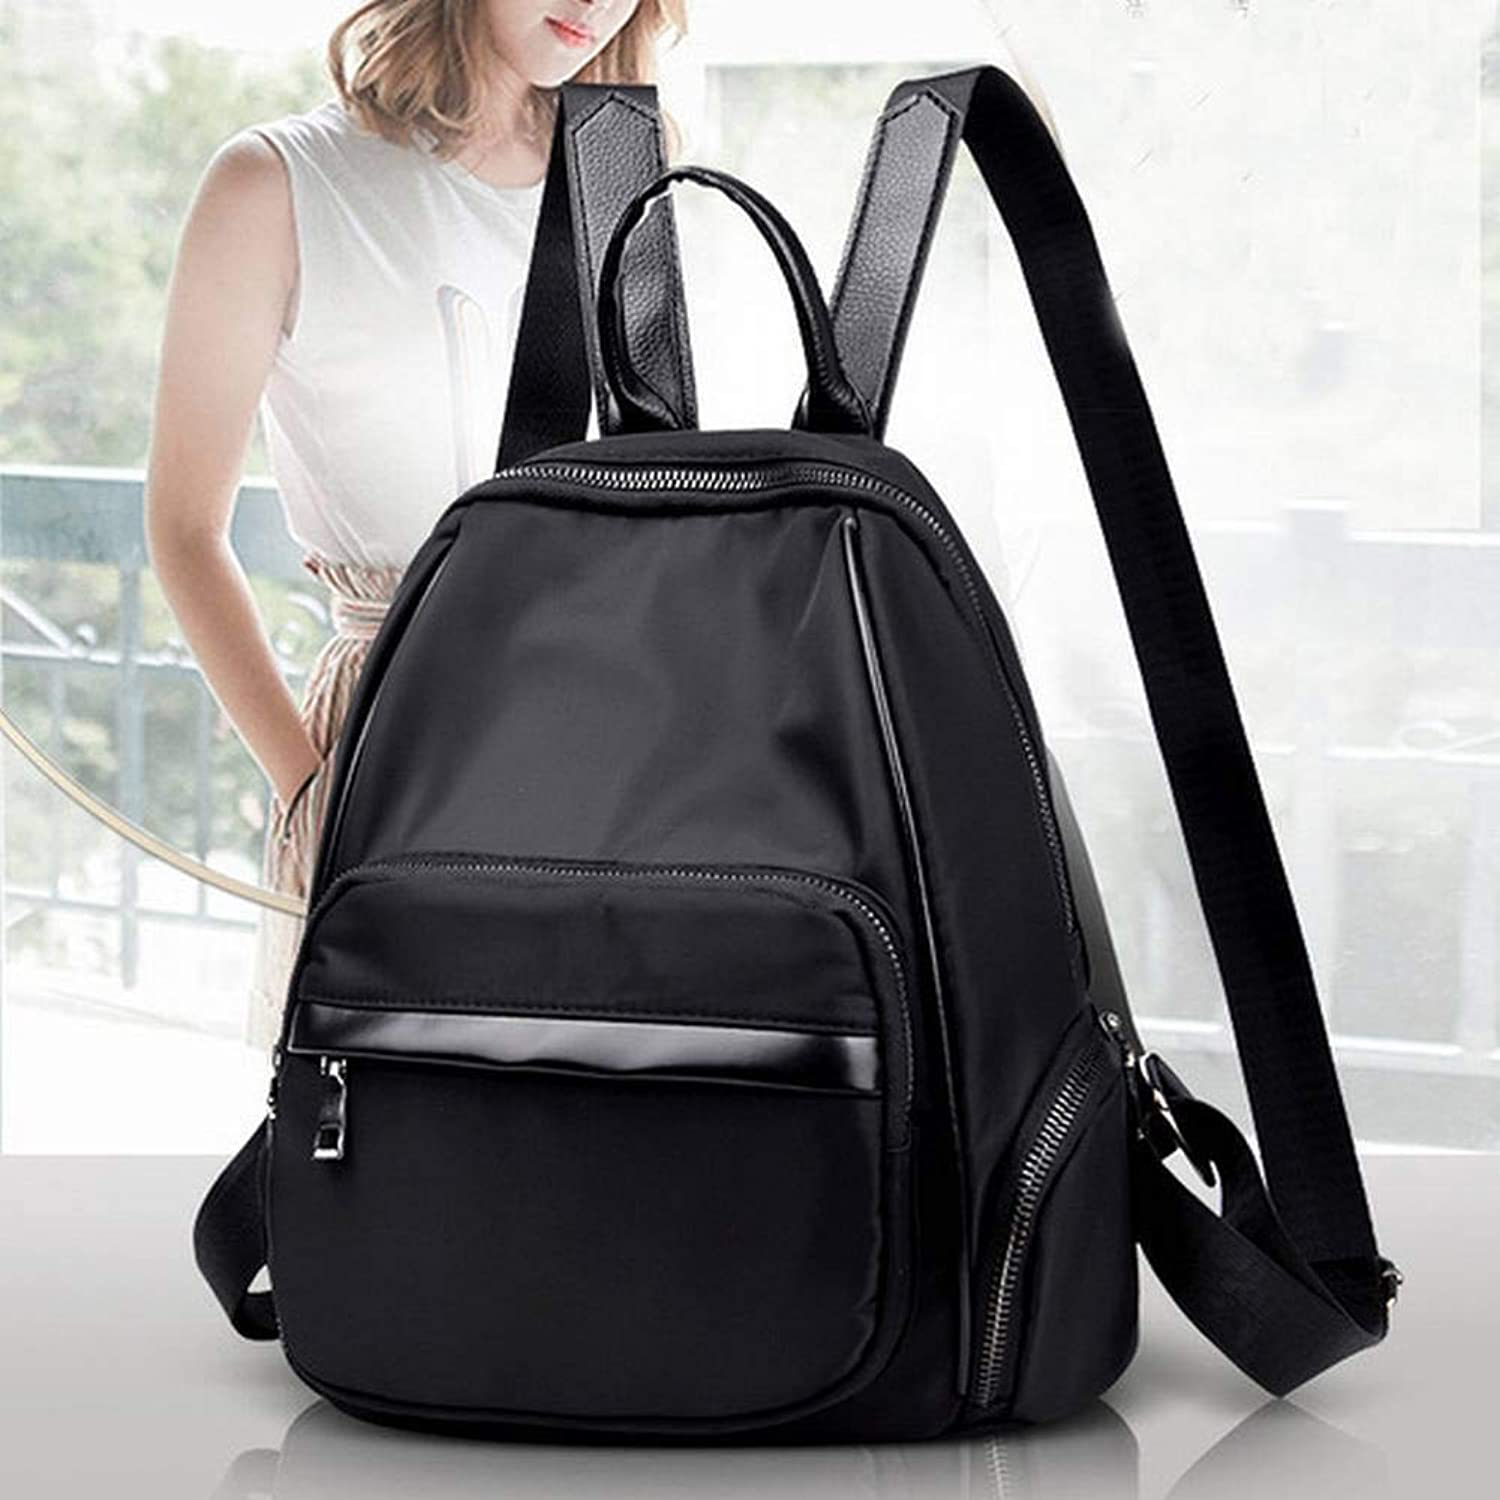 Creative Fashion Multifunctional Oxford Shoulder Bag Personality Casual Bag All Match School Bag for Women, Black